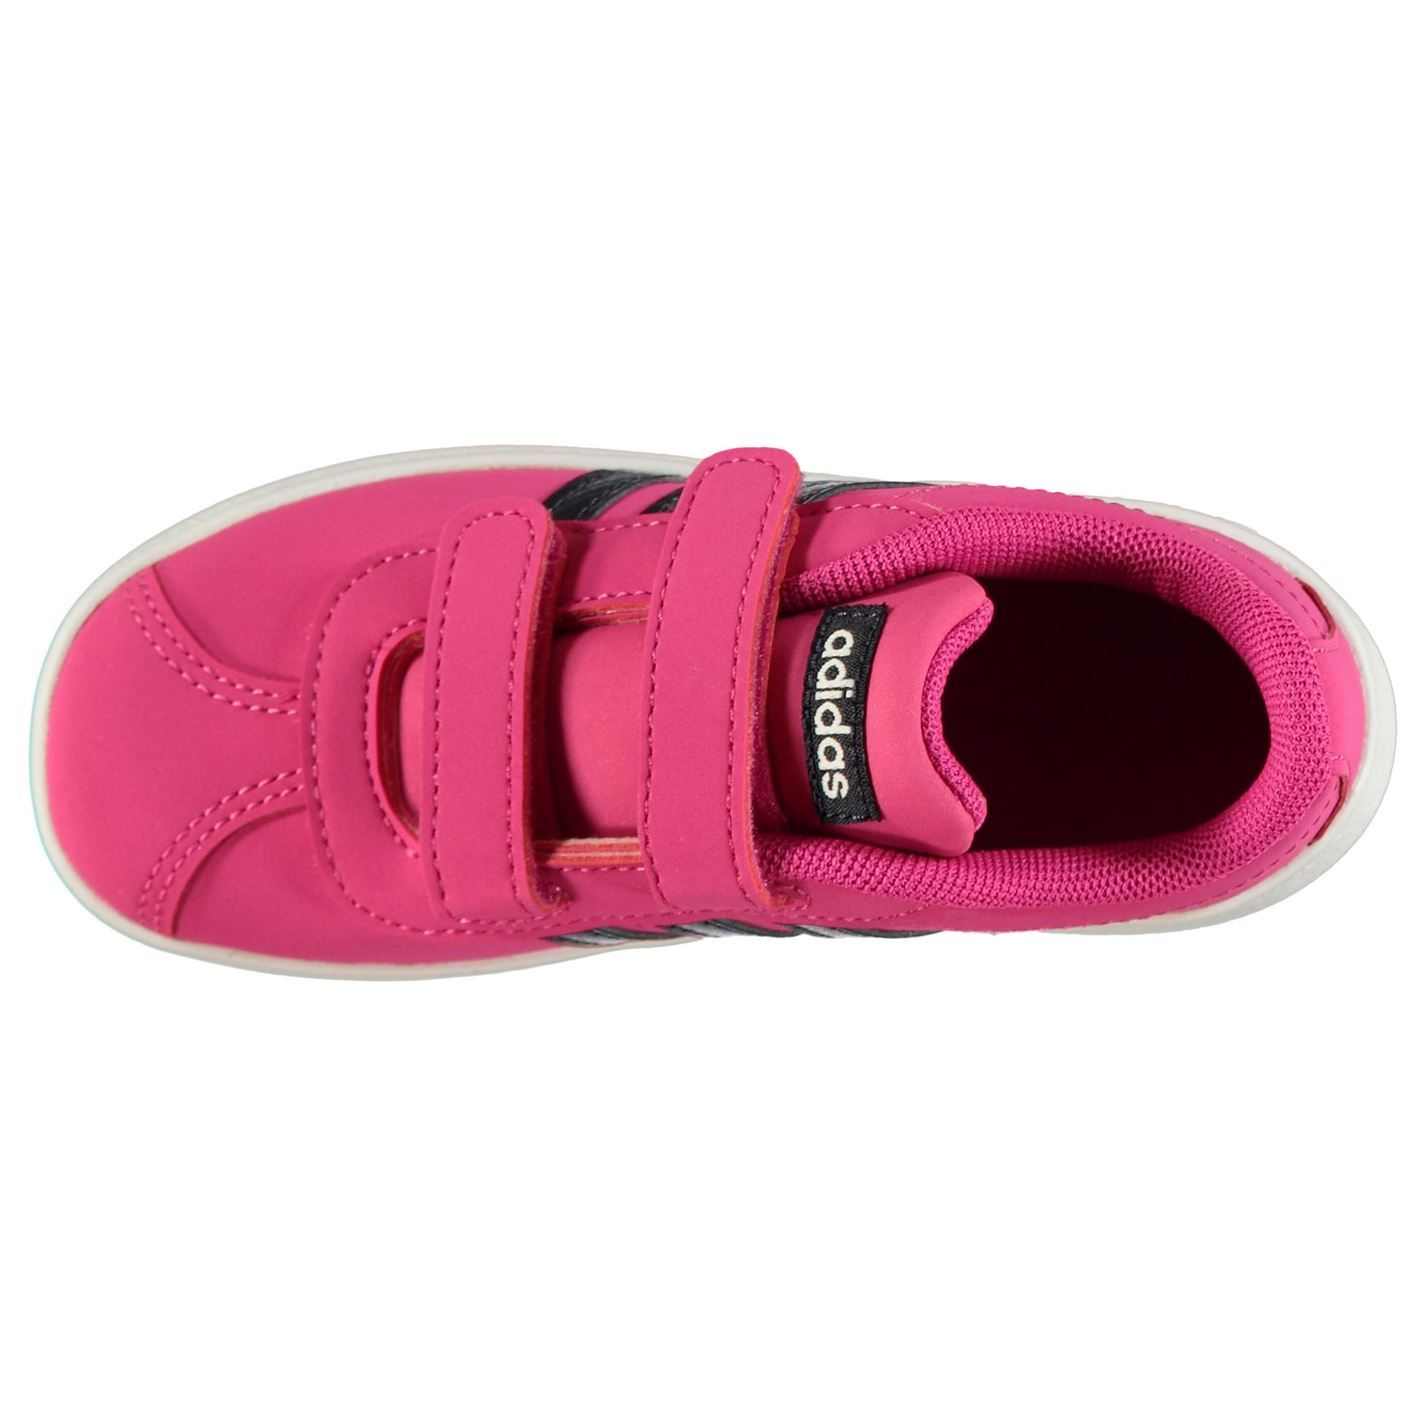 sneakers for cheap dccf9 bce72 ... adidas VL Court 2.0 Infant Girls Trainers Pink Black White Shoes  Footwear